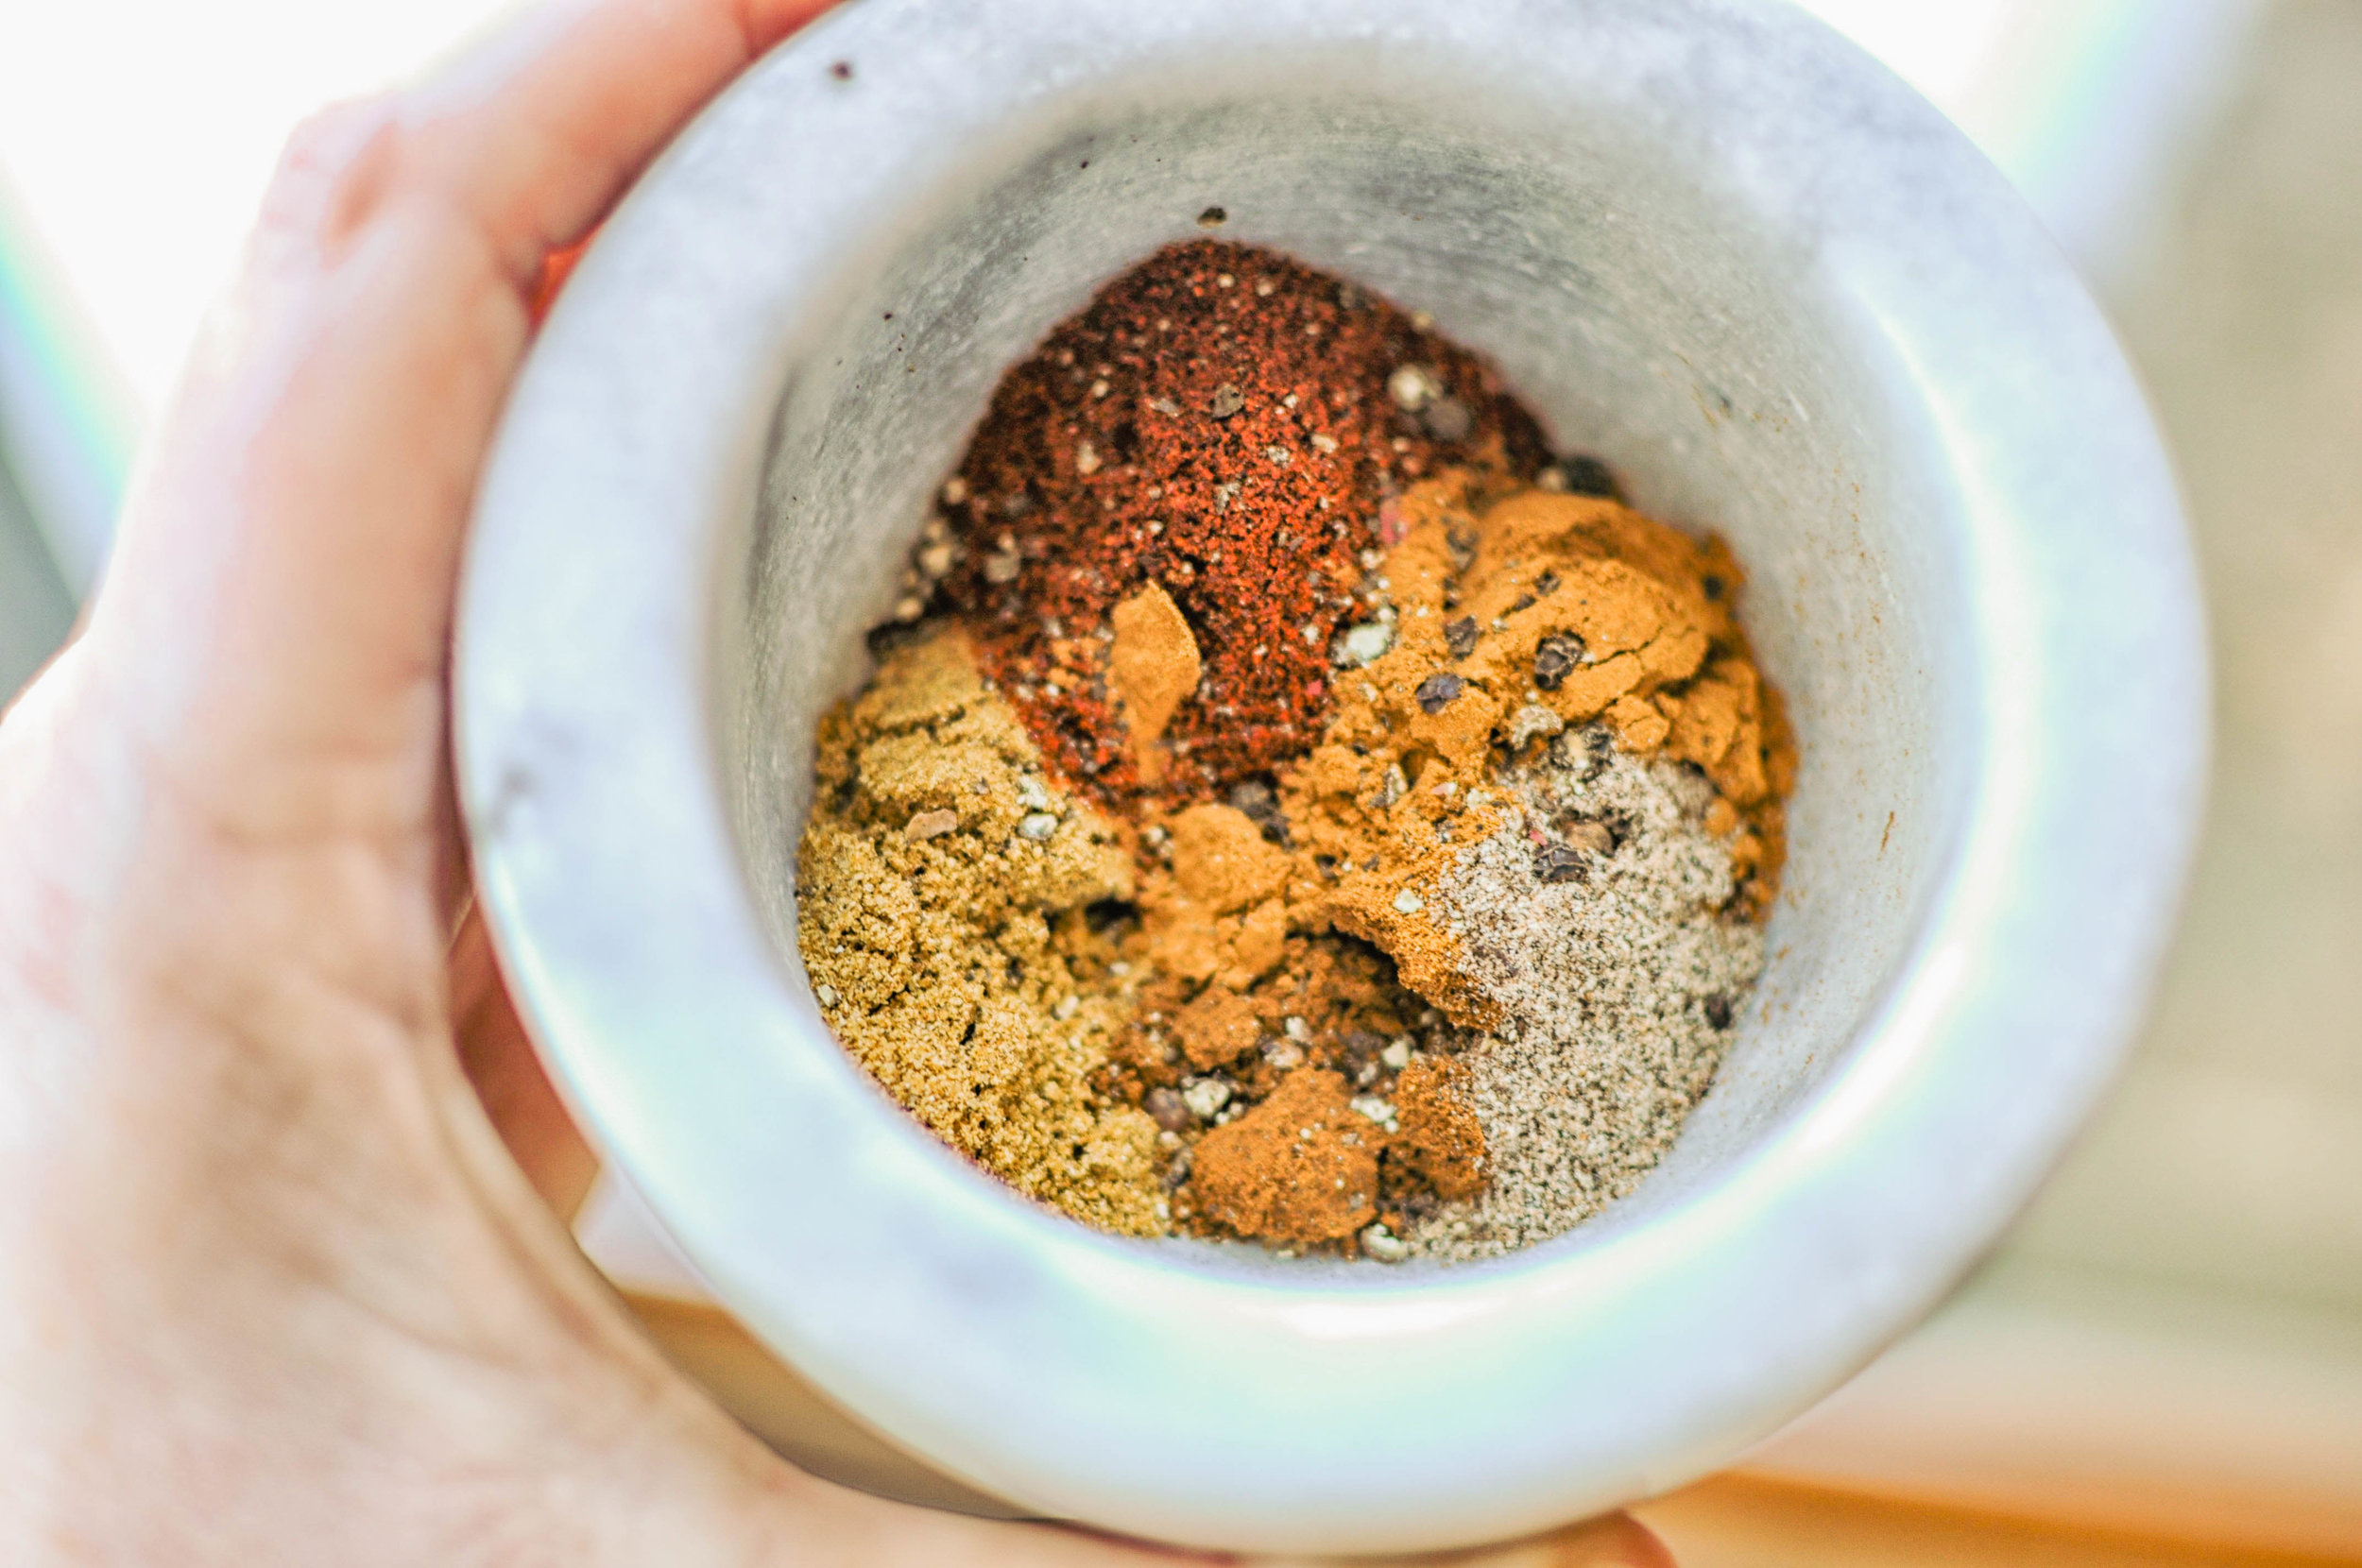 Baharat Spice Mix - how to use it, recipes for baharat spice mix, and where to buy it.